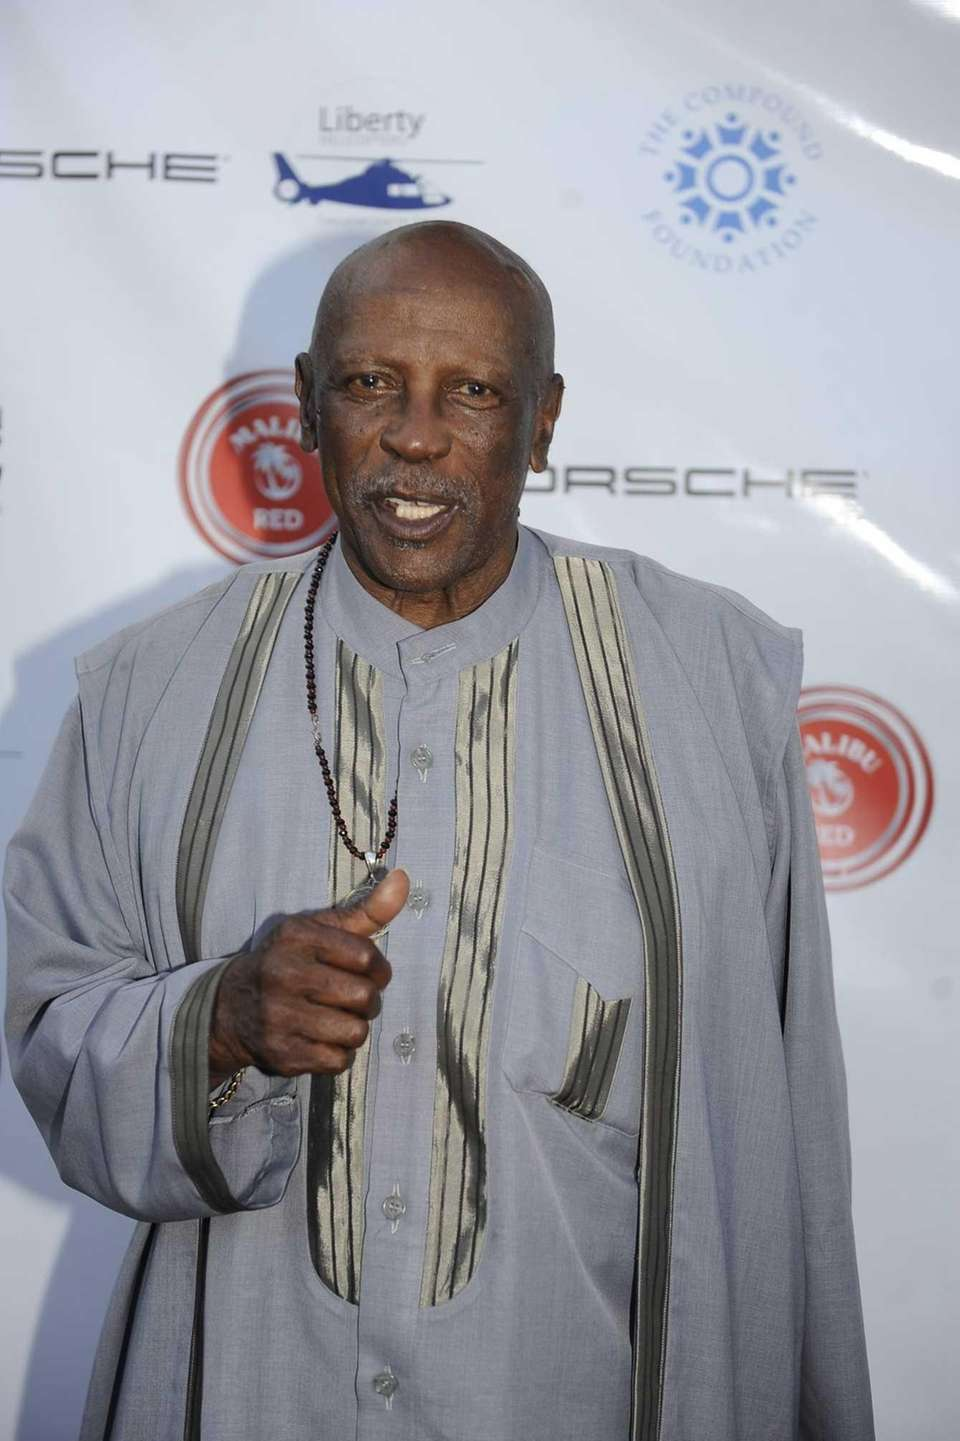 Actor Louis Gossett Jr. was honored at The